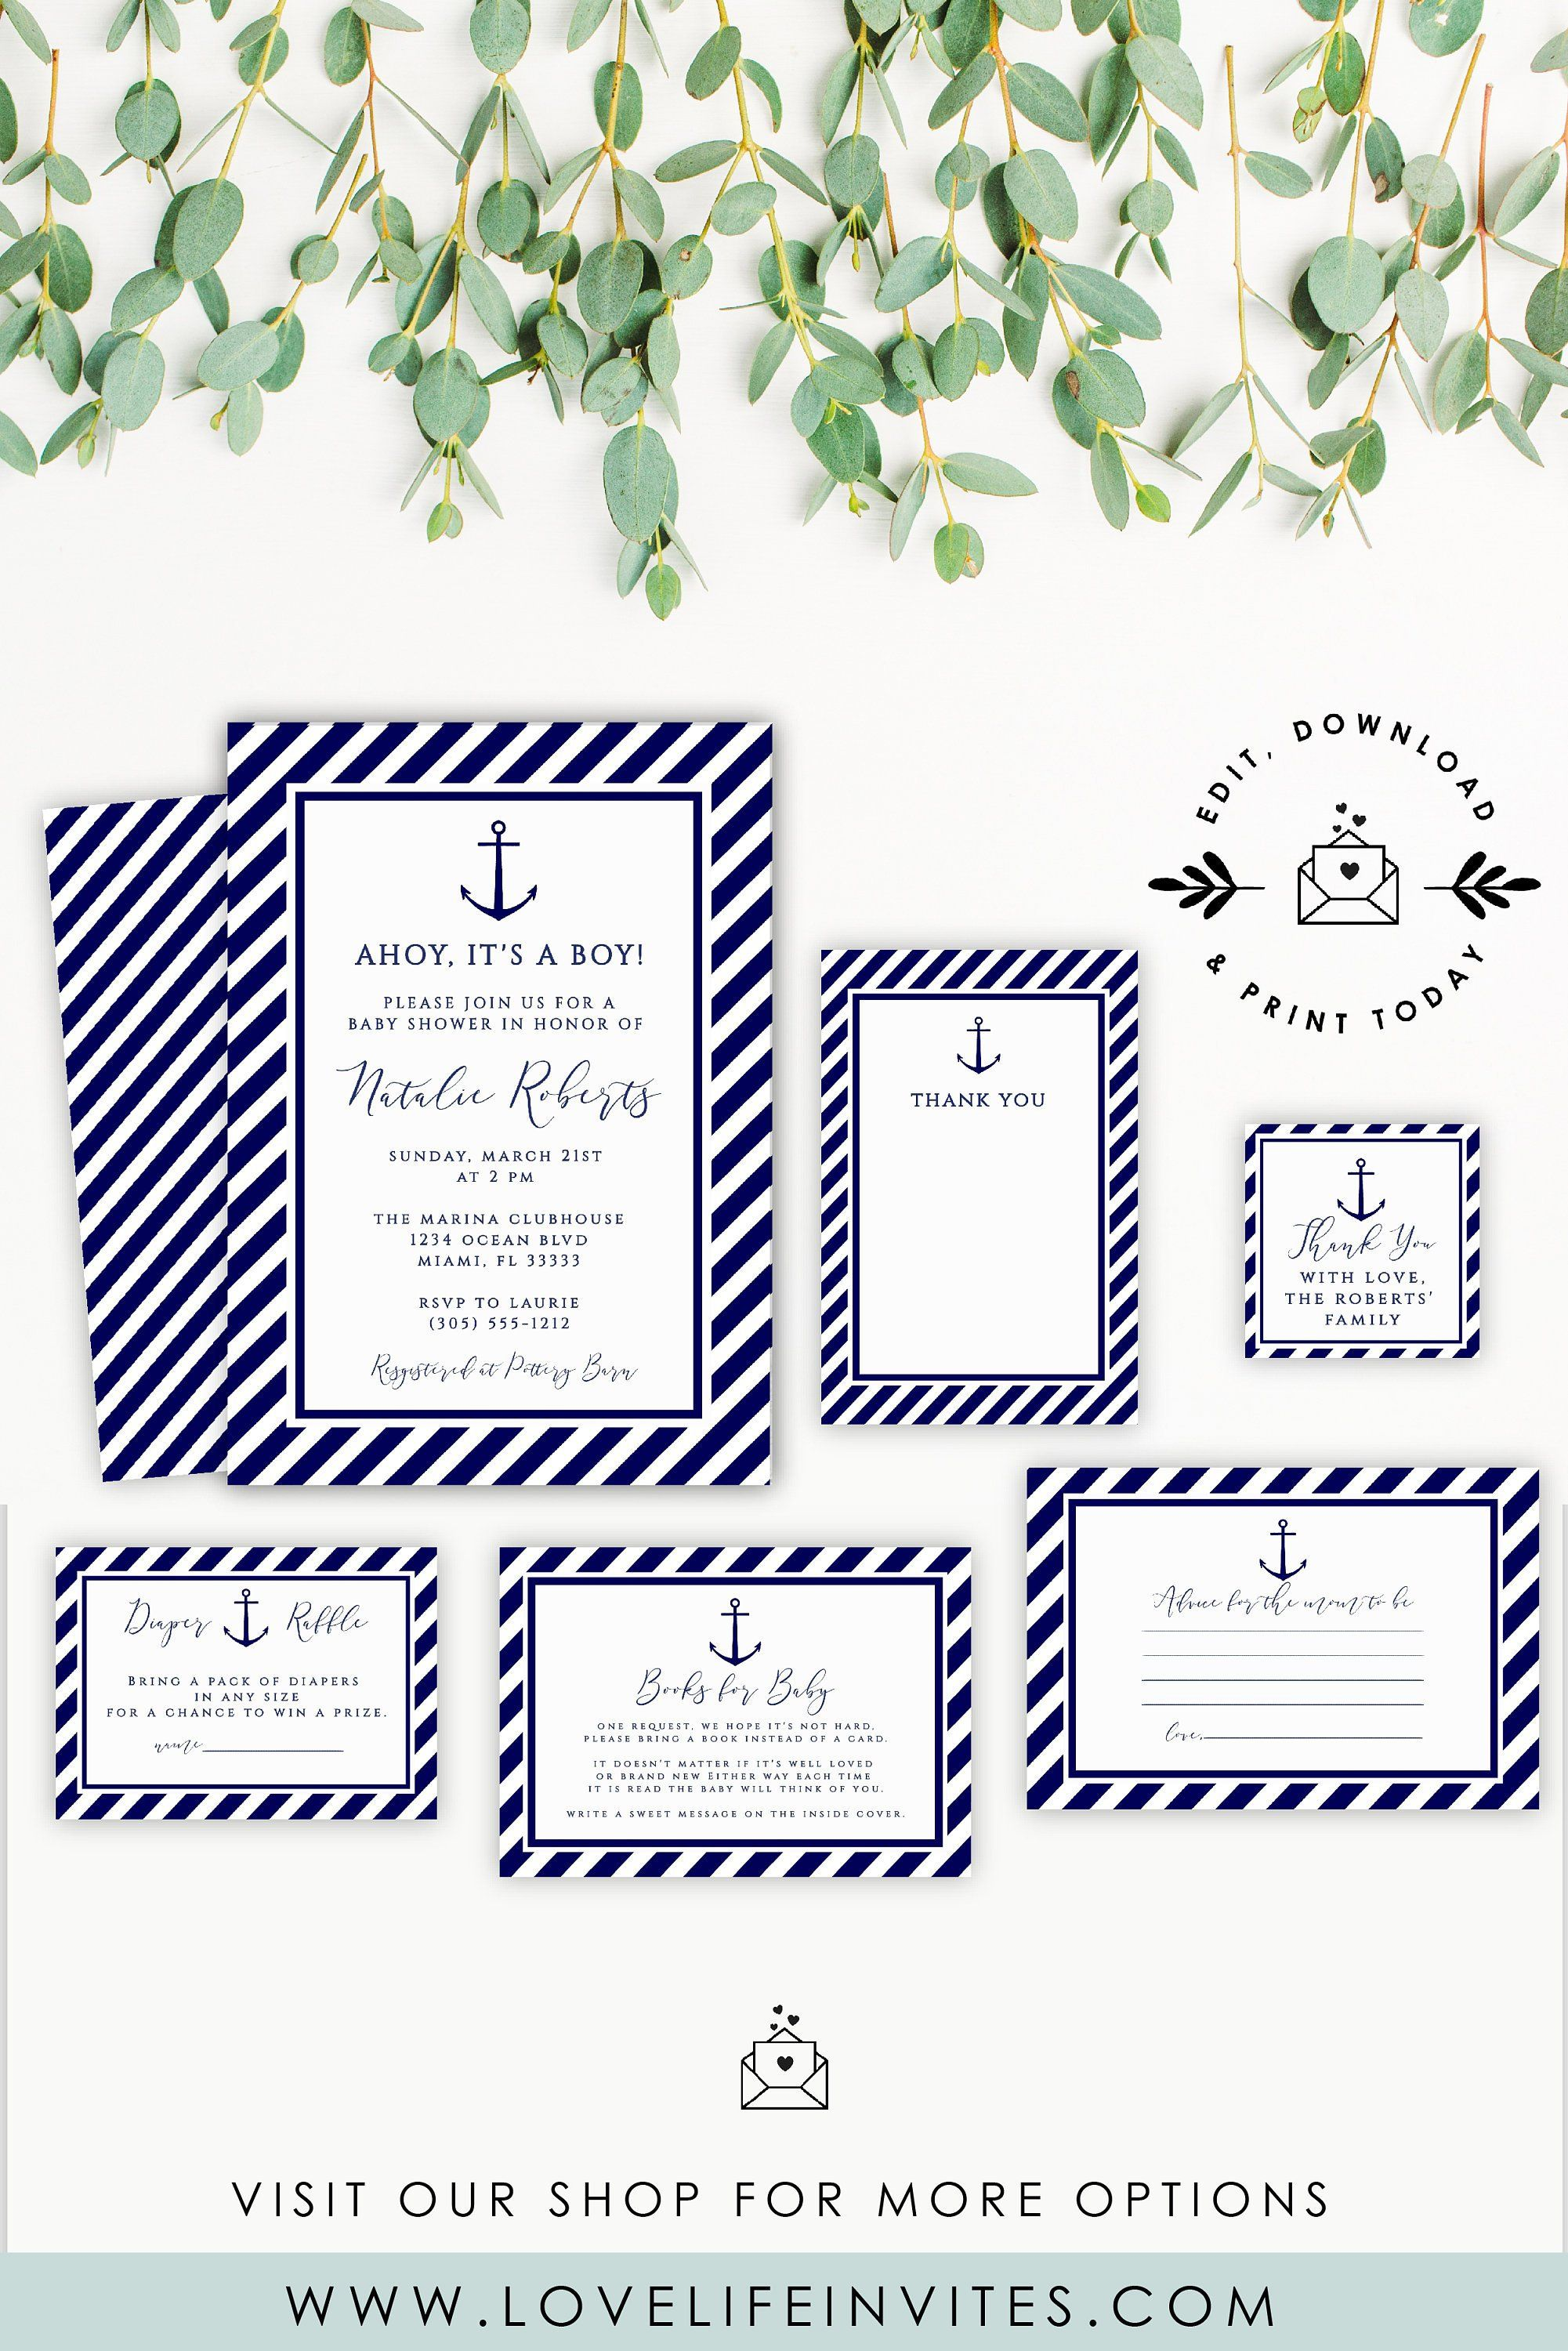 Ahoy Its A Boy Baby Shower Invitation Template